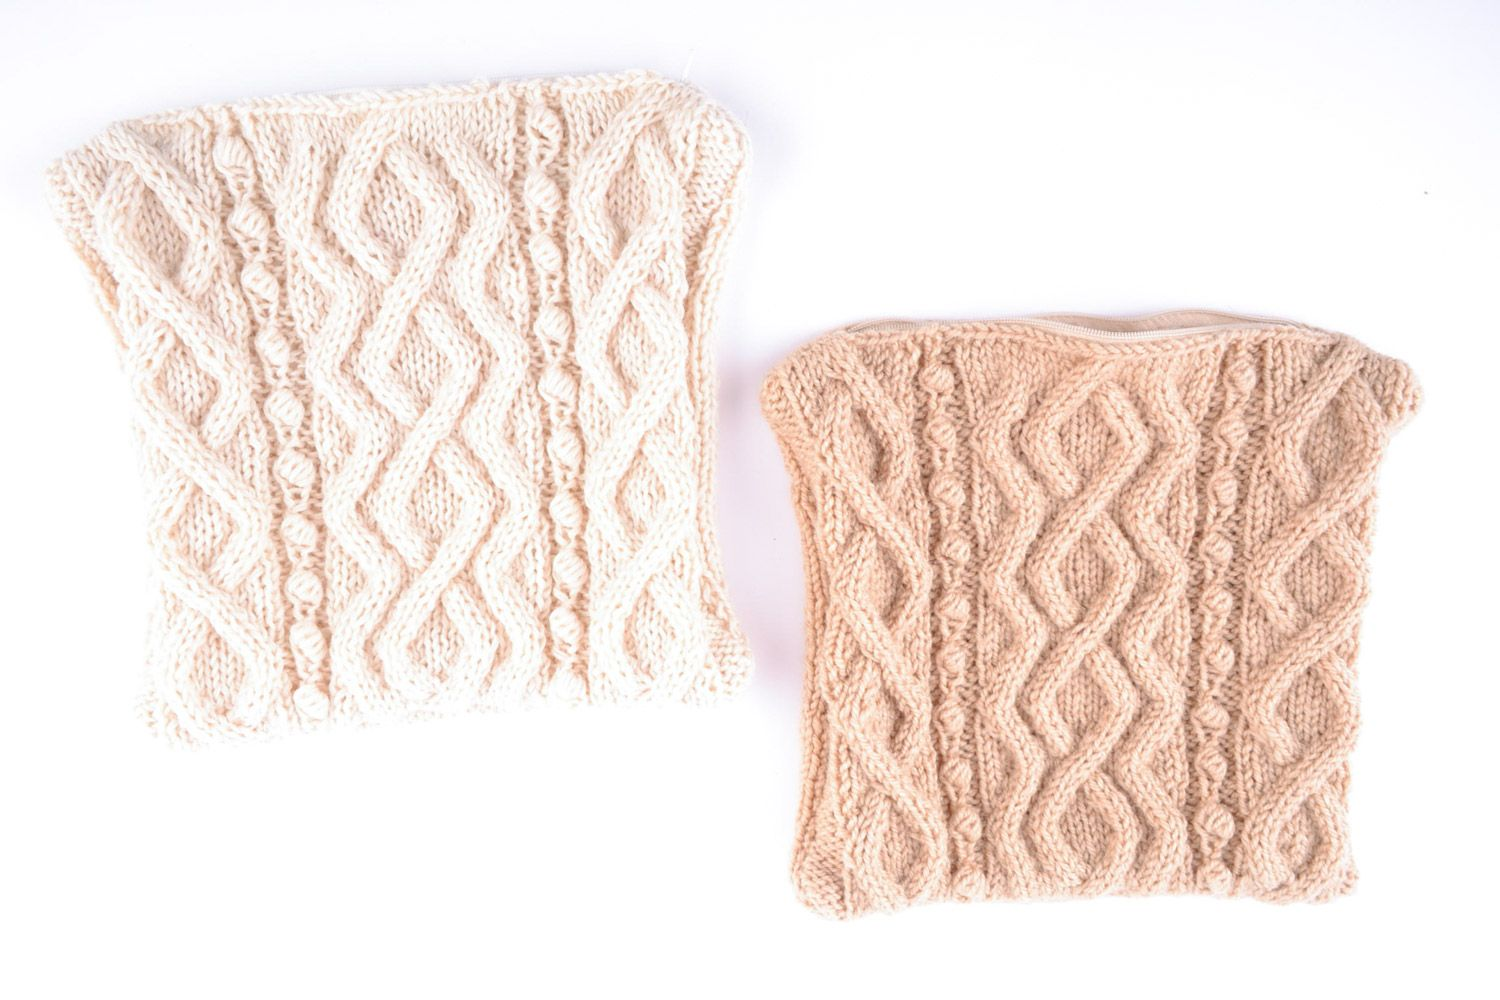 Set of light beige handmade semi-woolen knitted accent pillow cases 2 items - MADEheart.com